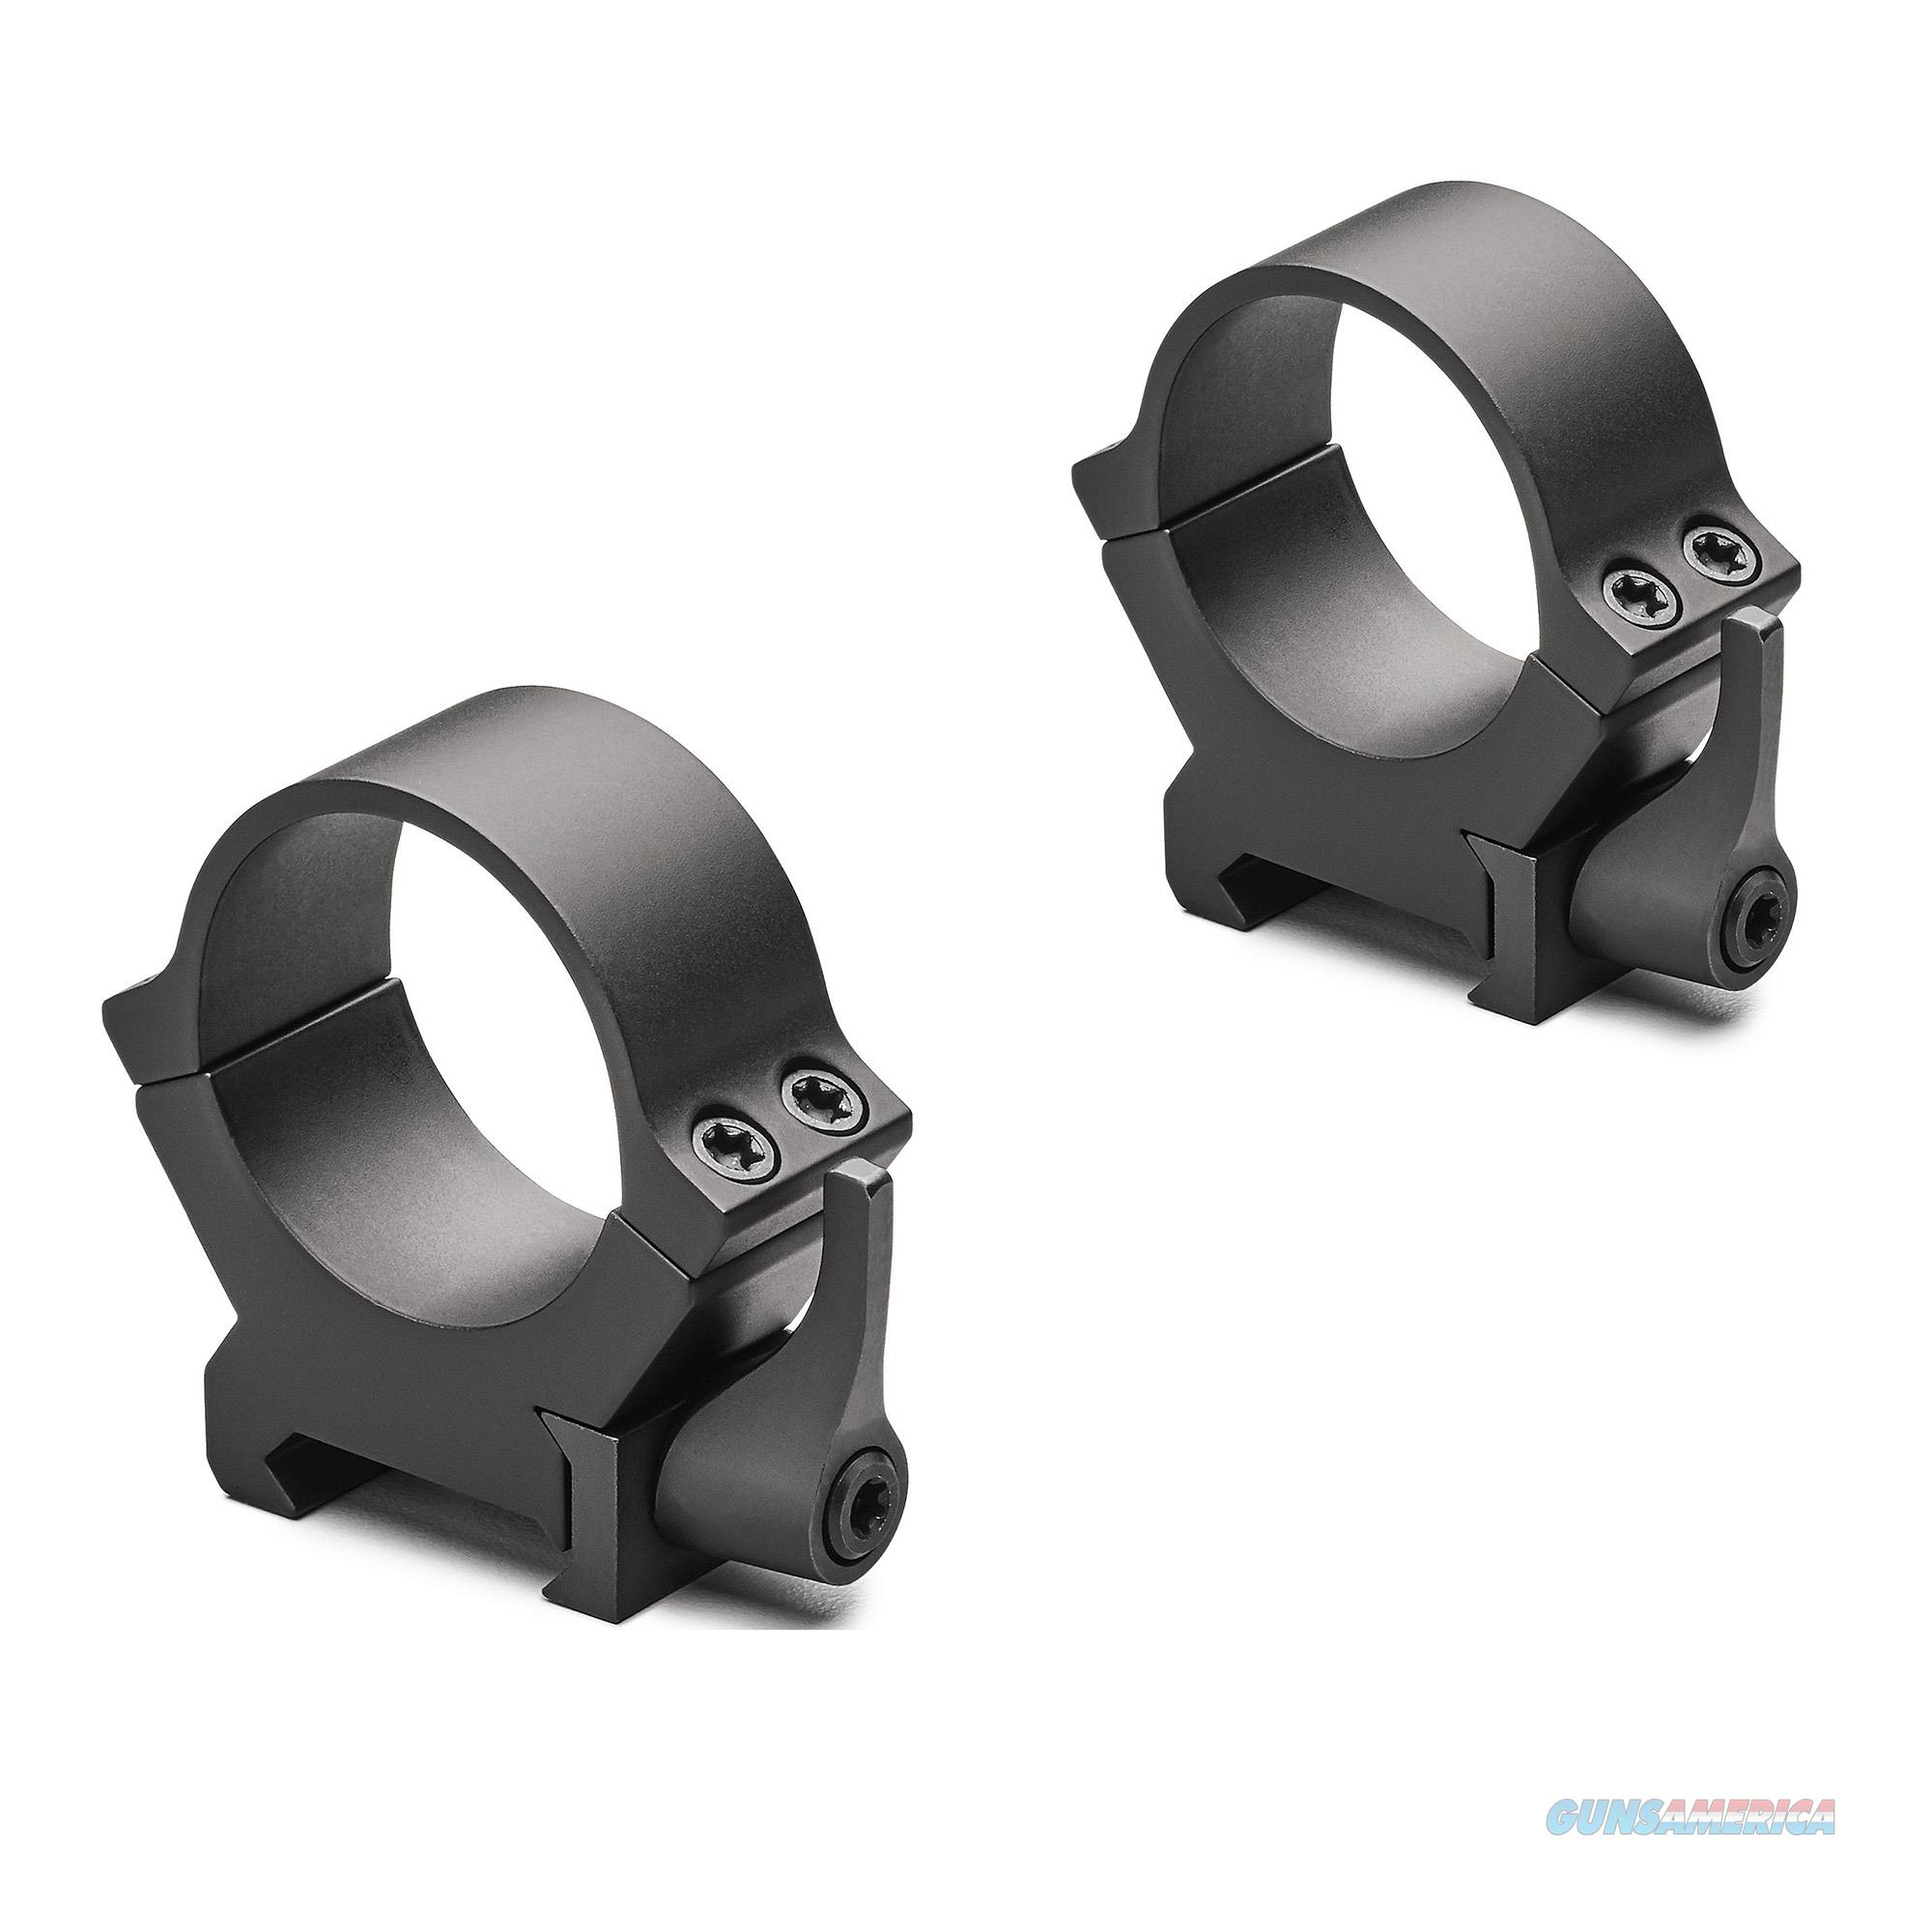 Leup Qrw2 30Mm Rings High Matte 174078  Non-Guns > Scopes/Mounts/Rings & Optics > Mounts > Other